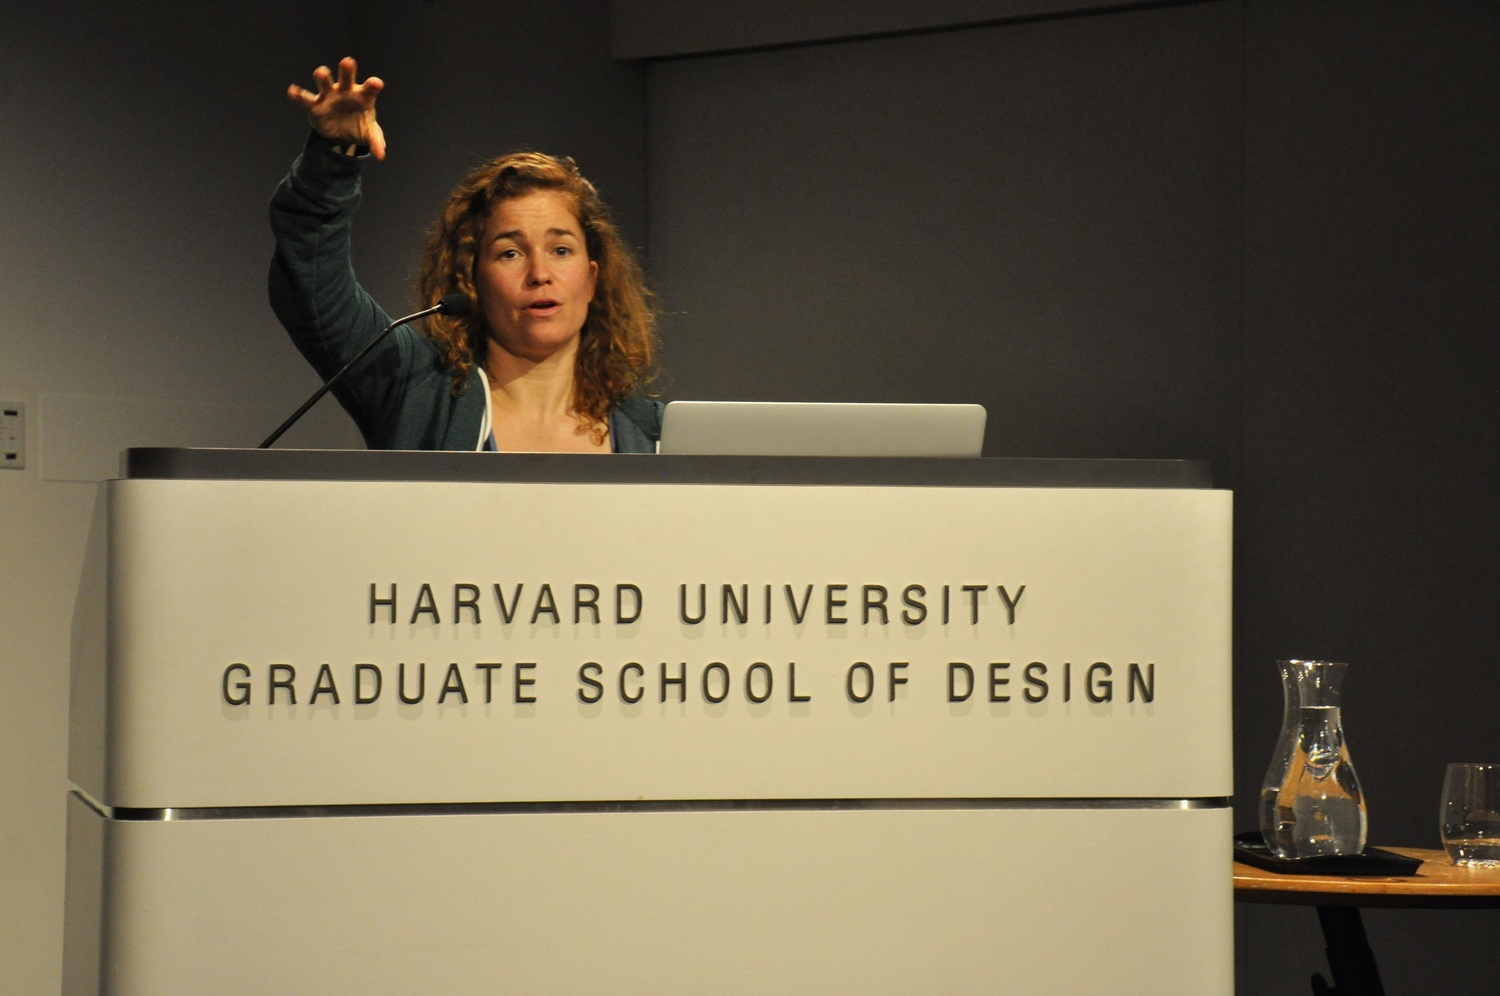 Loeb Fellowship Lecture by Caledonia Curry